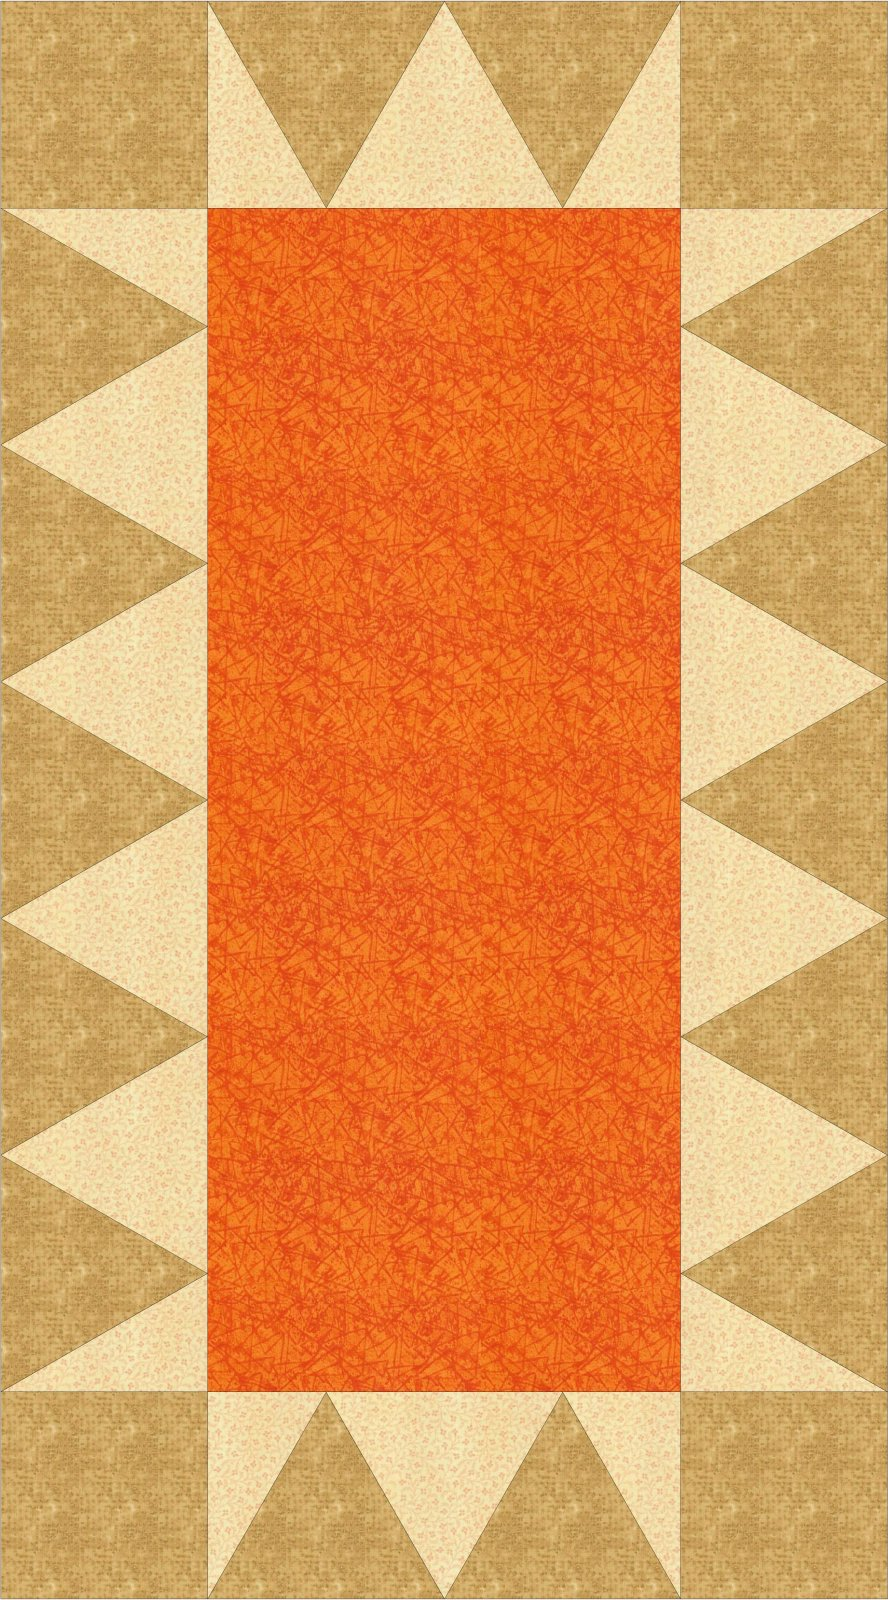 Chomp Chomp Table Runner Electronic Download Pattern 20x40